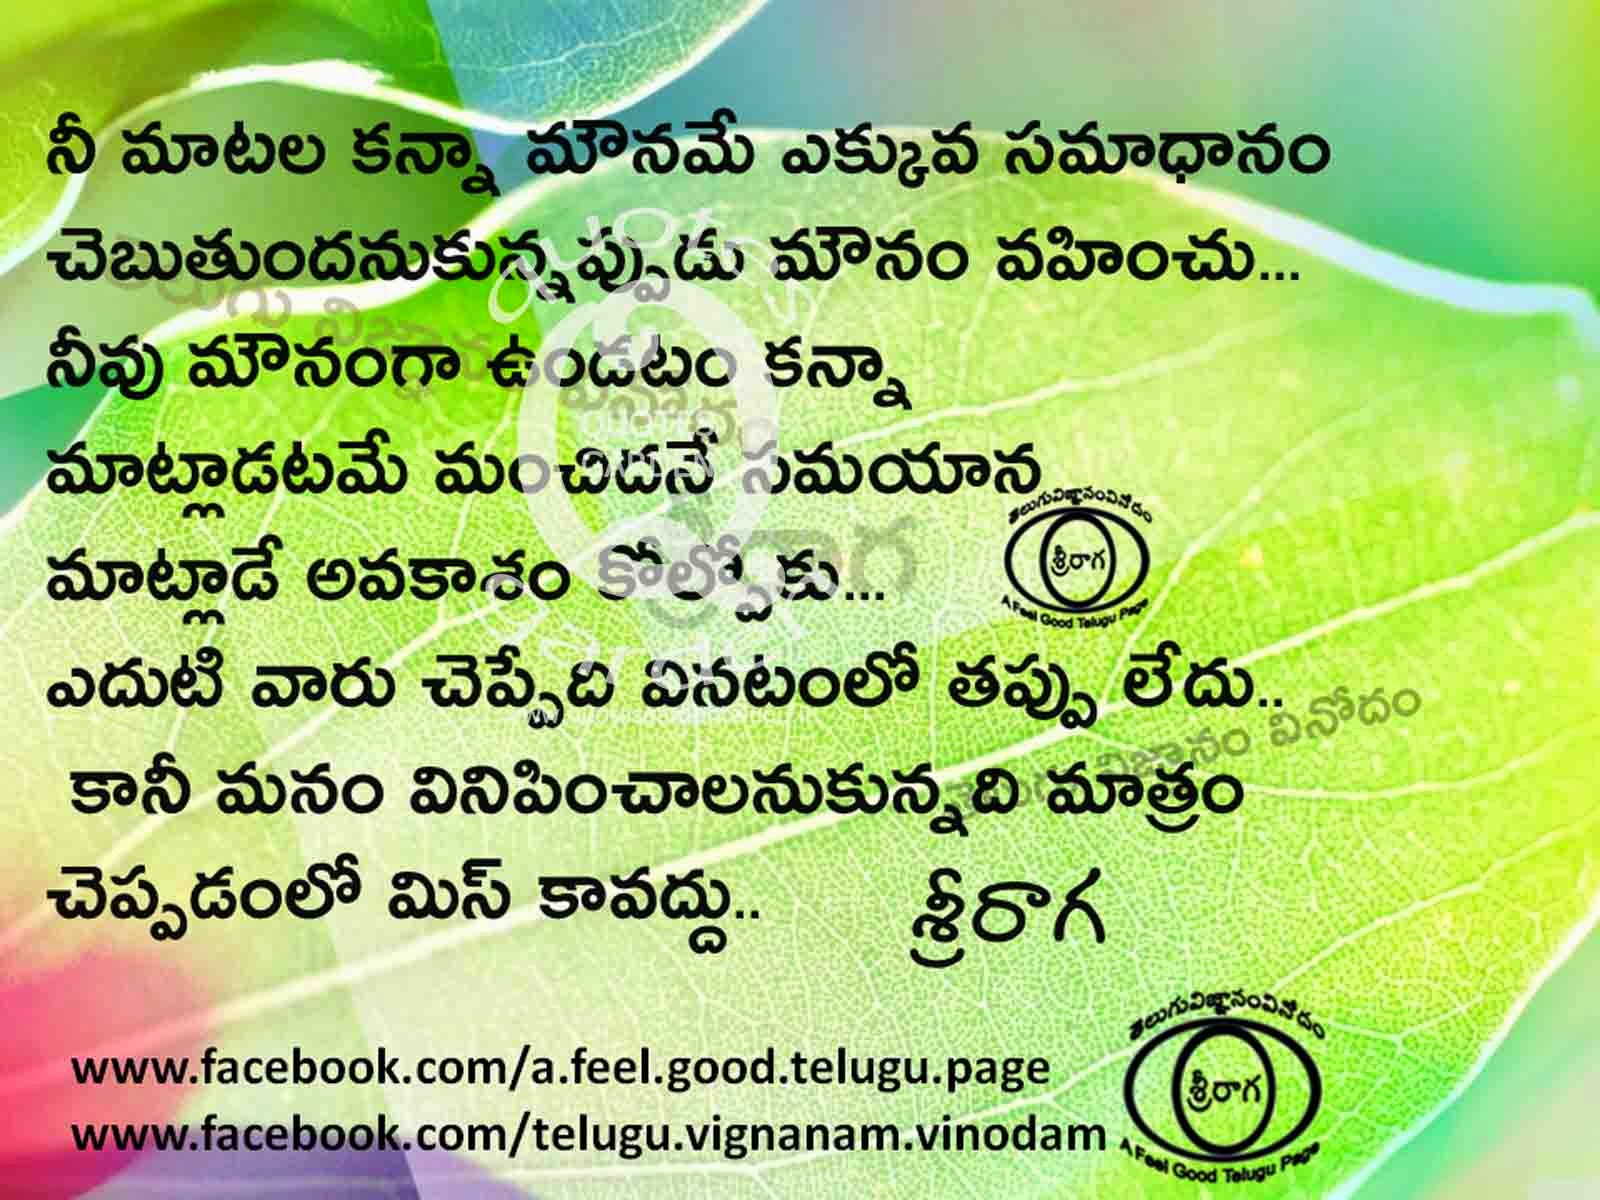 Best telugu life quotes for face book- Life quotes in telugu - Best inspirational quotes about life - Best telugu inspirational quotes - Best telugu inspirational quotes about life - Best telugu Quotes